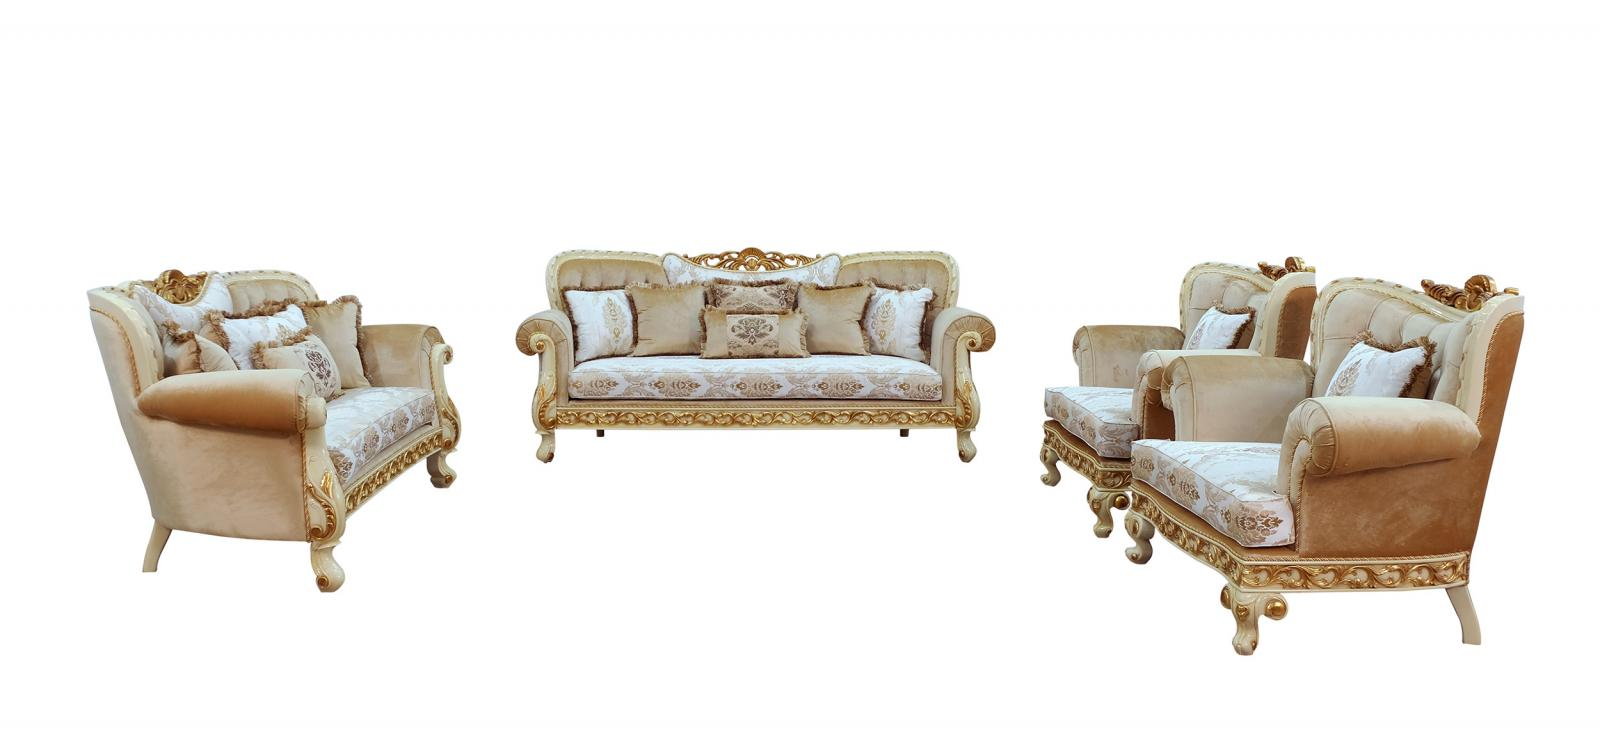 Classic  Traditional Gold  Sand  Off-White Wood  Solid Hardwood and Fabric Sofa Set EUROPEAN FURNITURE 40015-S-Set-4